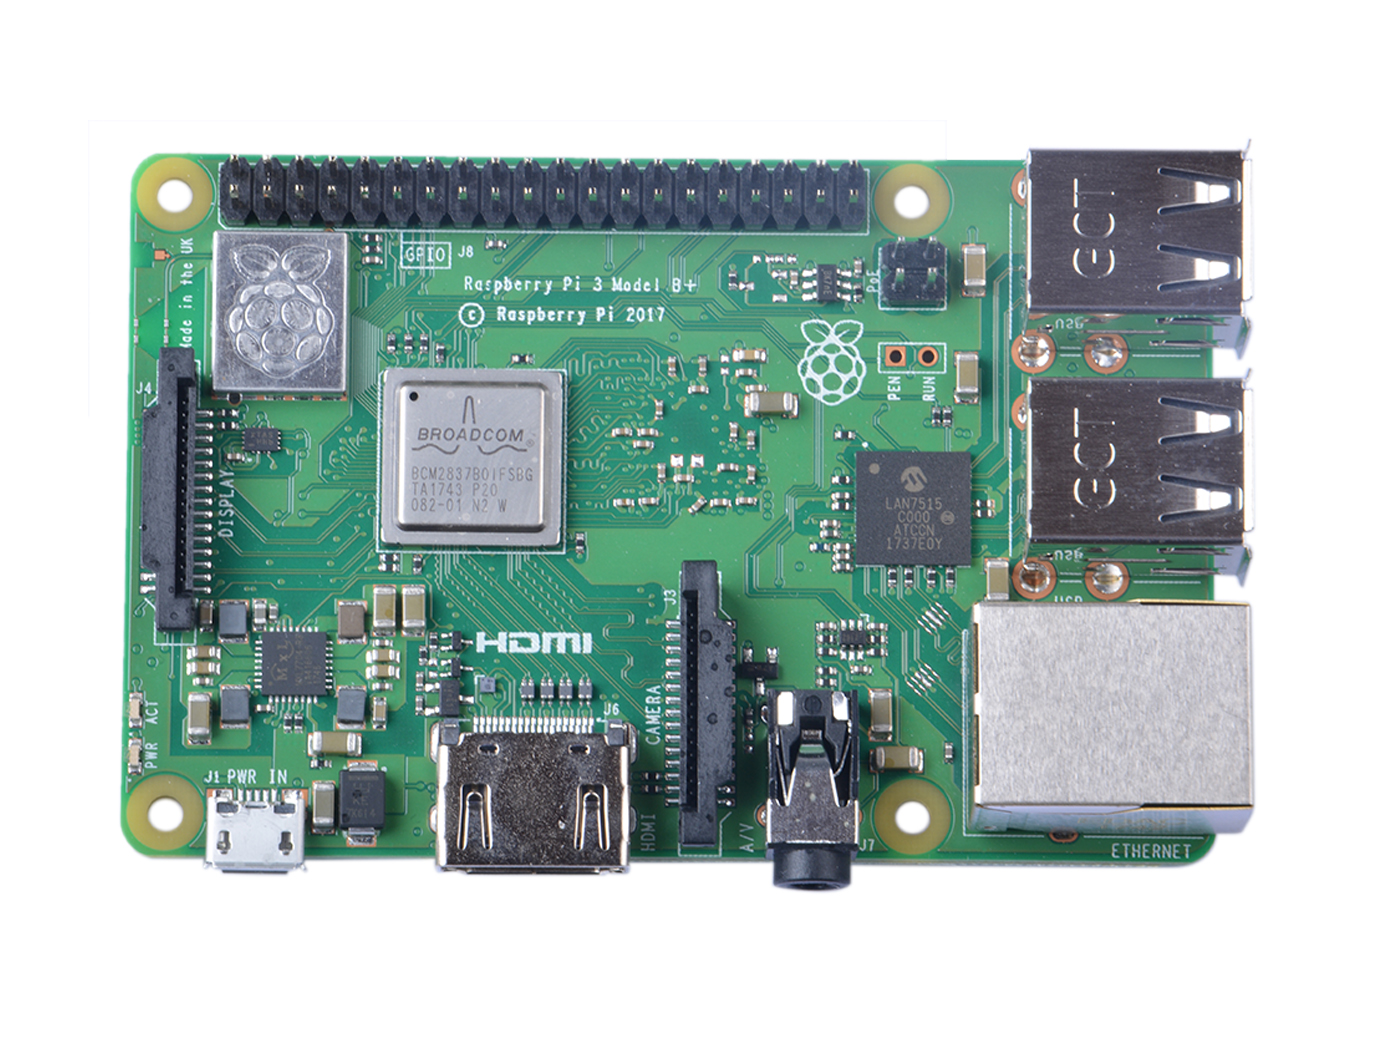 Raspberry Pi 3 Model B+ - Boards - Seeed Studio